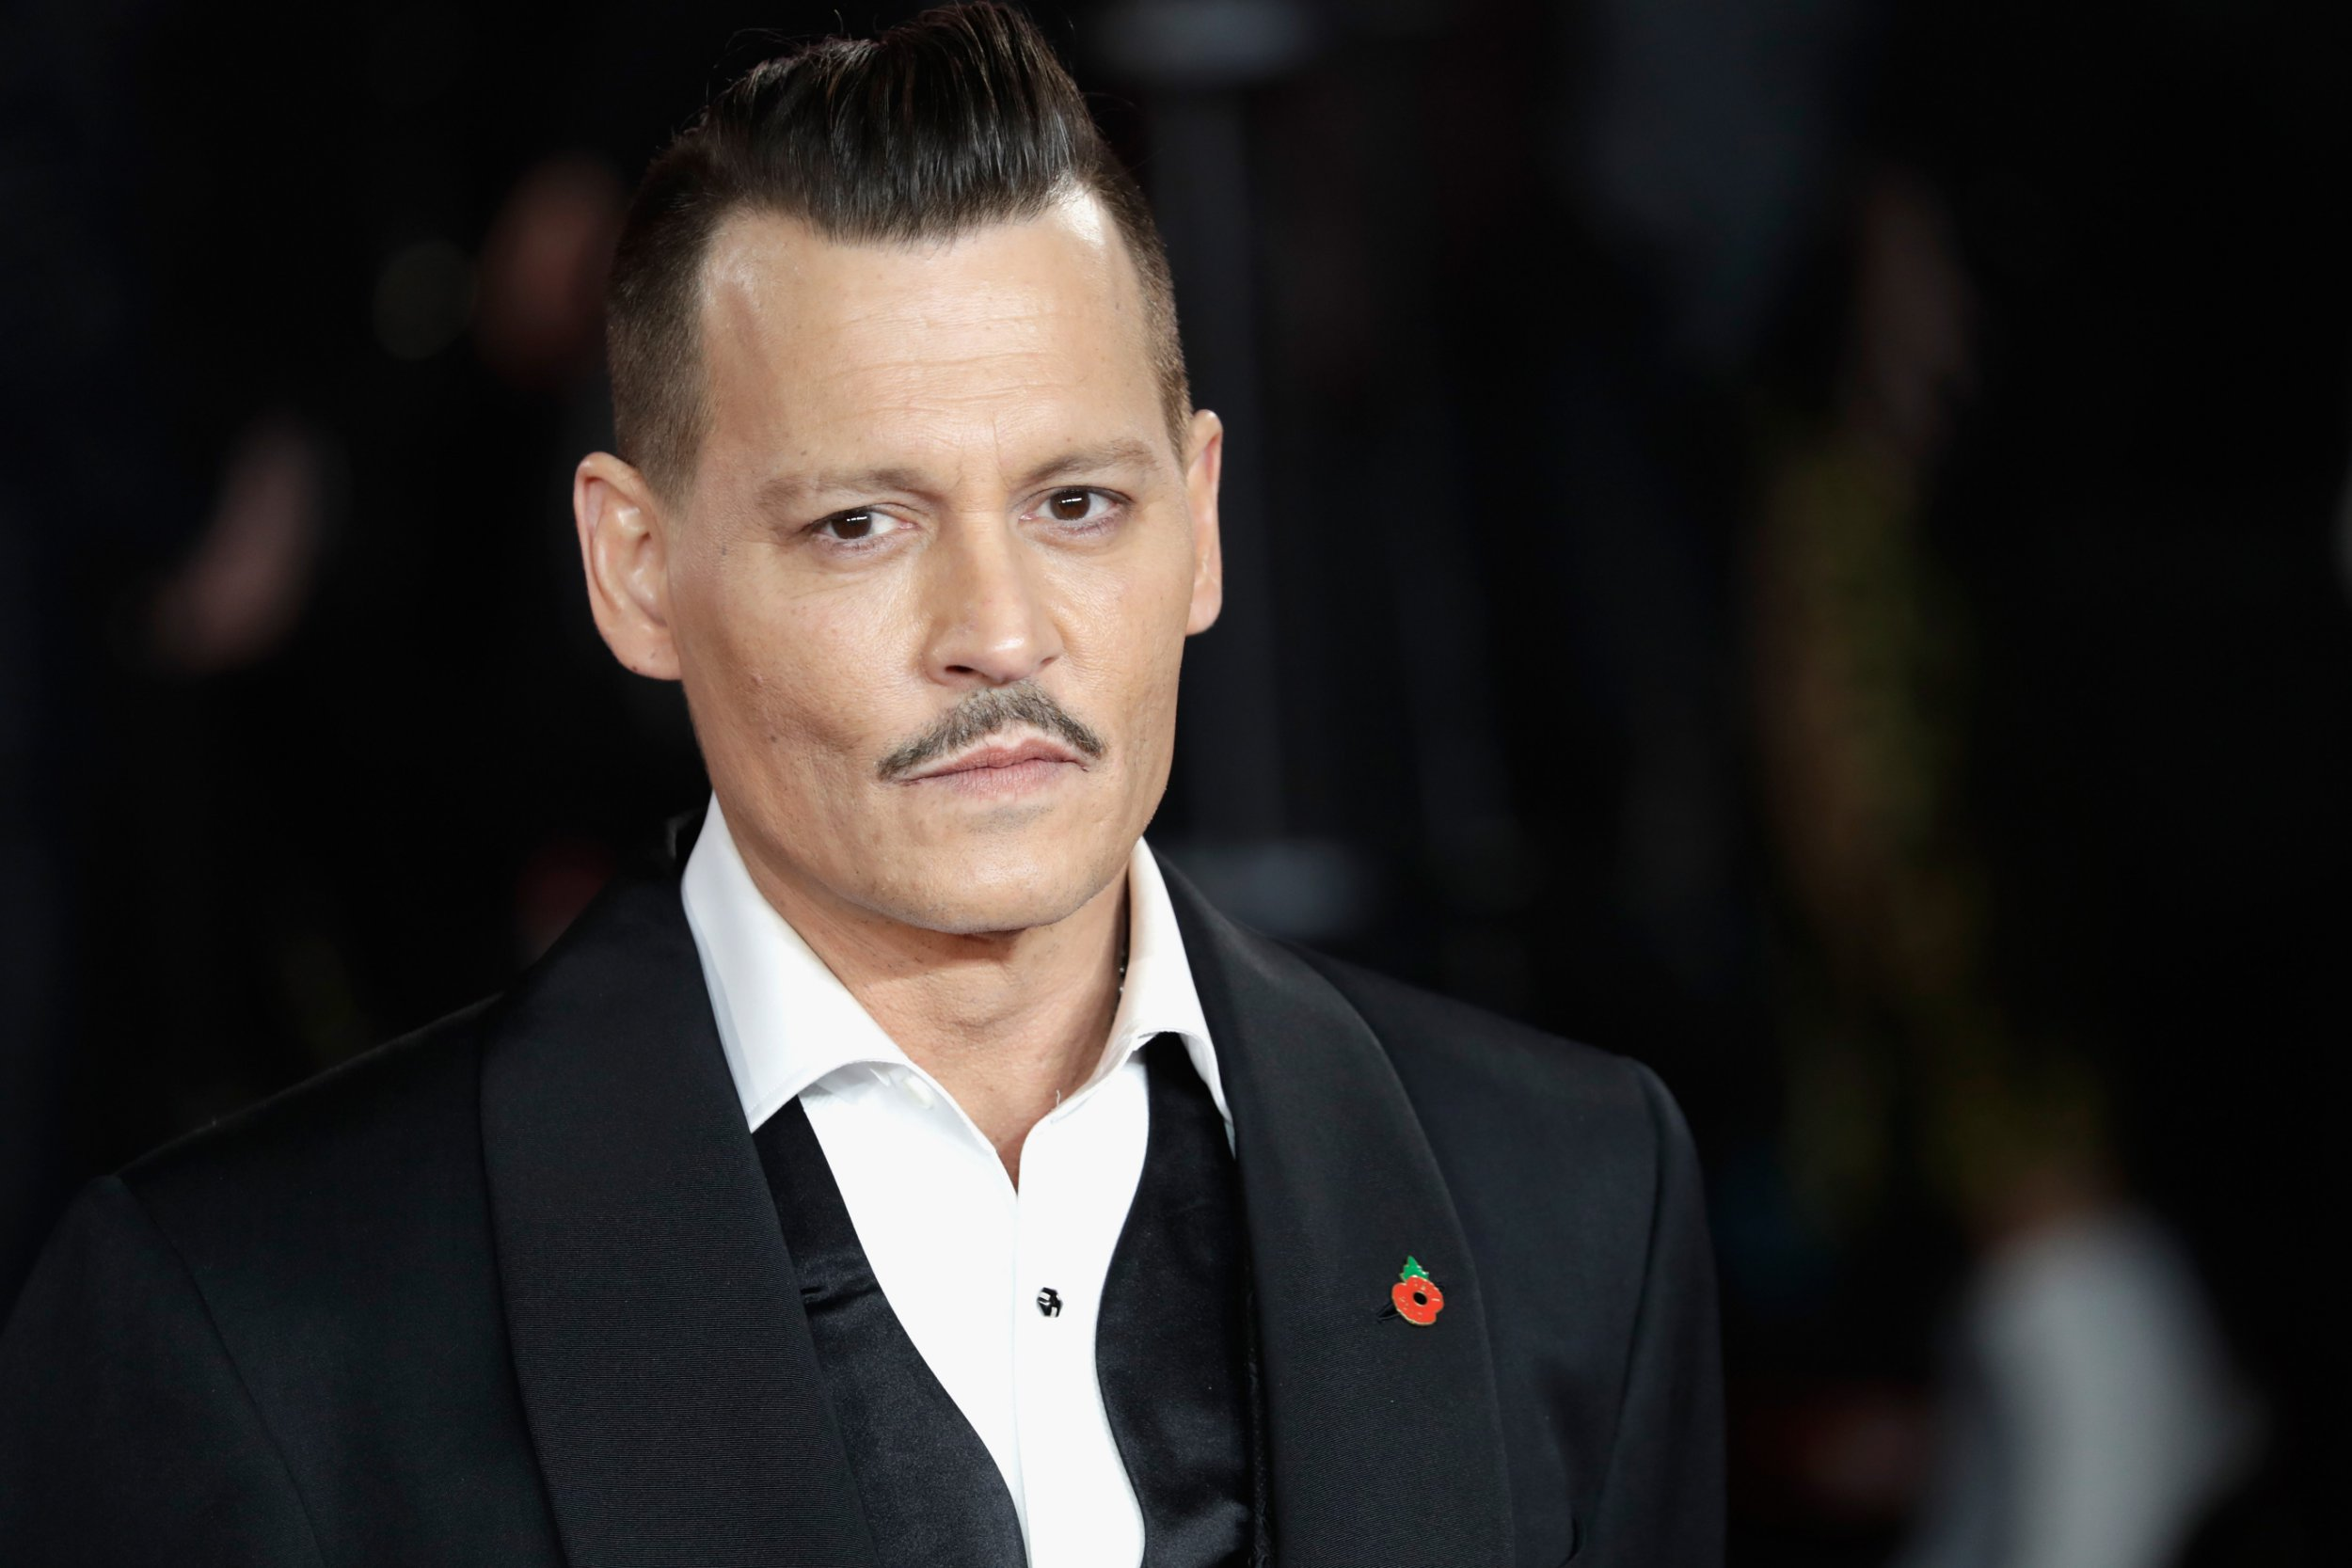 Johnny Depp is a no-show at Fantastic Beasts: The Crimes of Grindelwald premiere